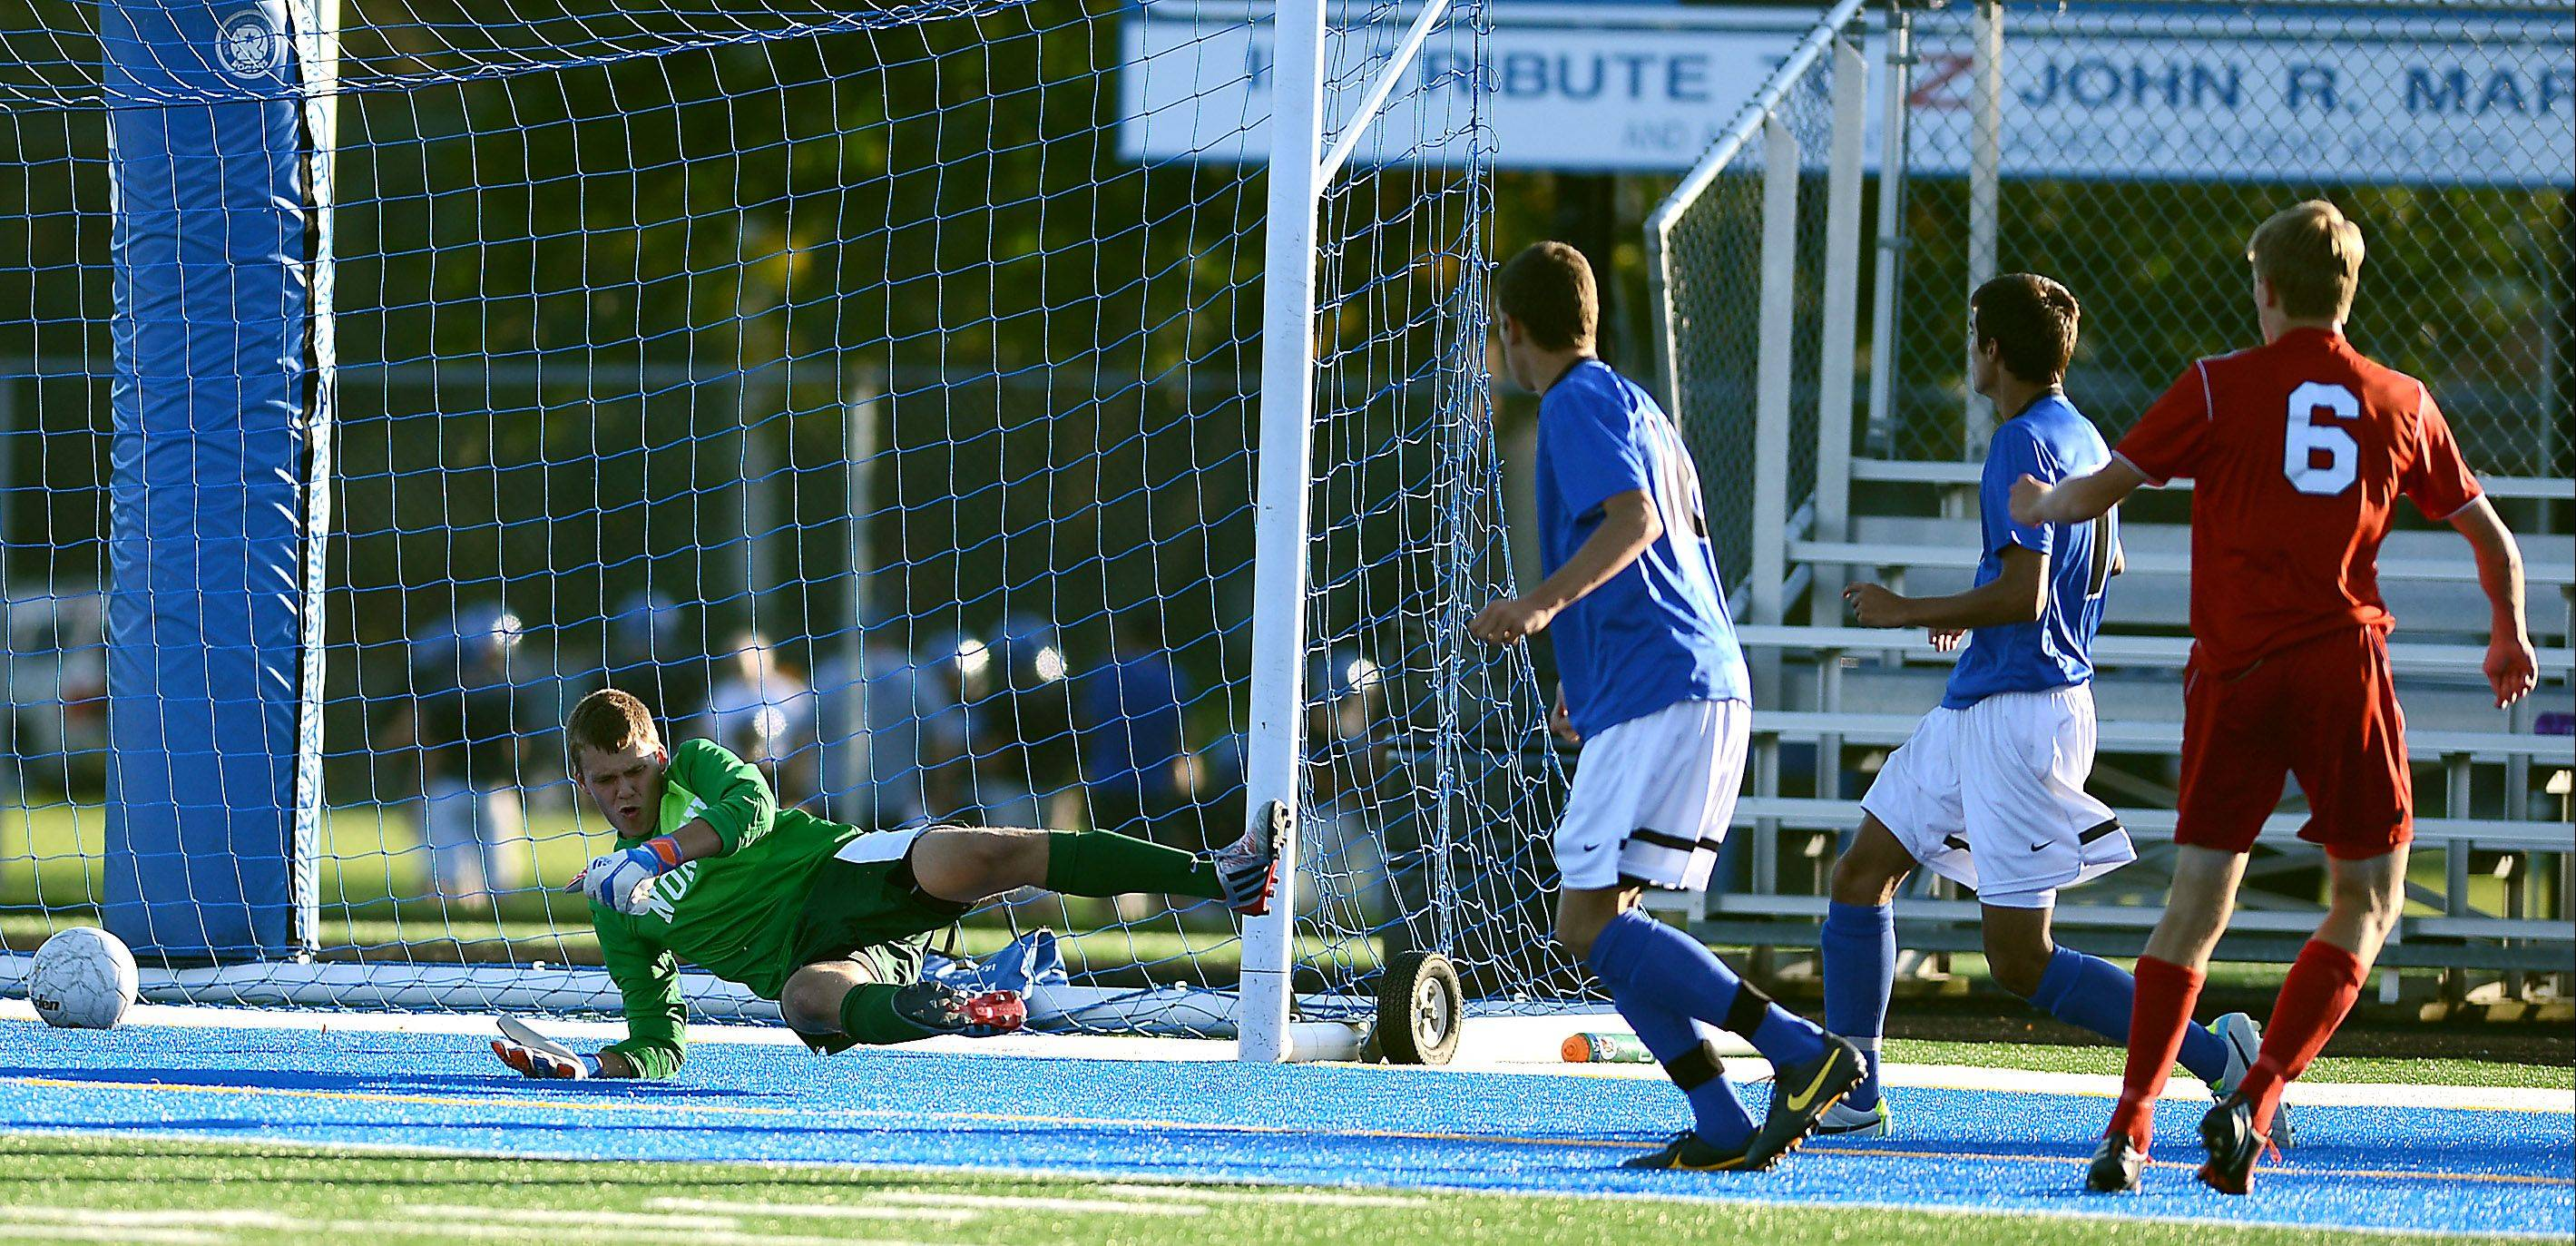 Batavia's Ian Larson (6) slides a shot past St. Charles North's Billy Larsen for the game-winning goal Tuesday in Geneva.